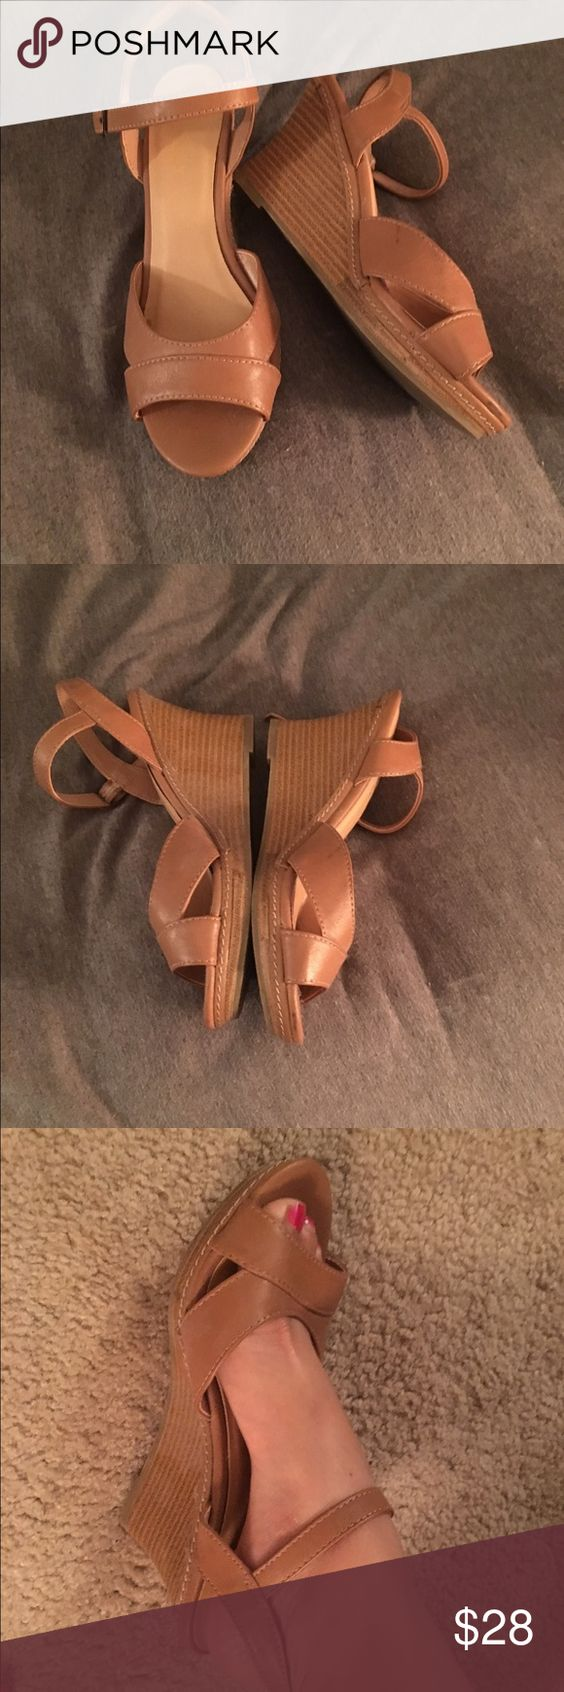 New Wedges, Tan! Simple, classic, every occasion! Worn 0-1 time, no joke, perfect condition. Every occasion. Too big for me (adjustable straps). 2-3 in heel. Very comfortable. Tan color matches everything. Selling cheaper + free ship on M3RC@RI ! Shoes Platforms